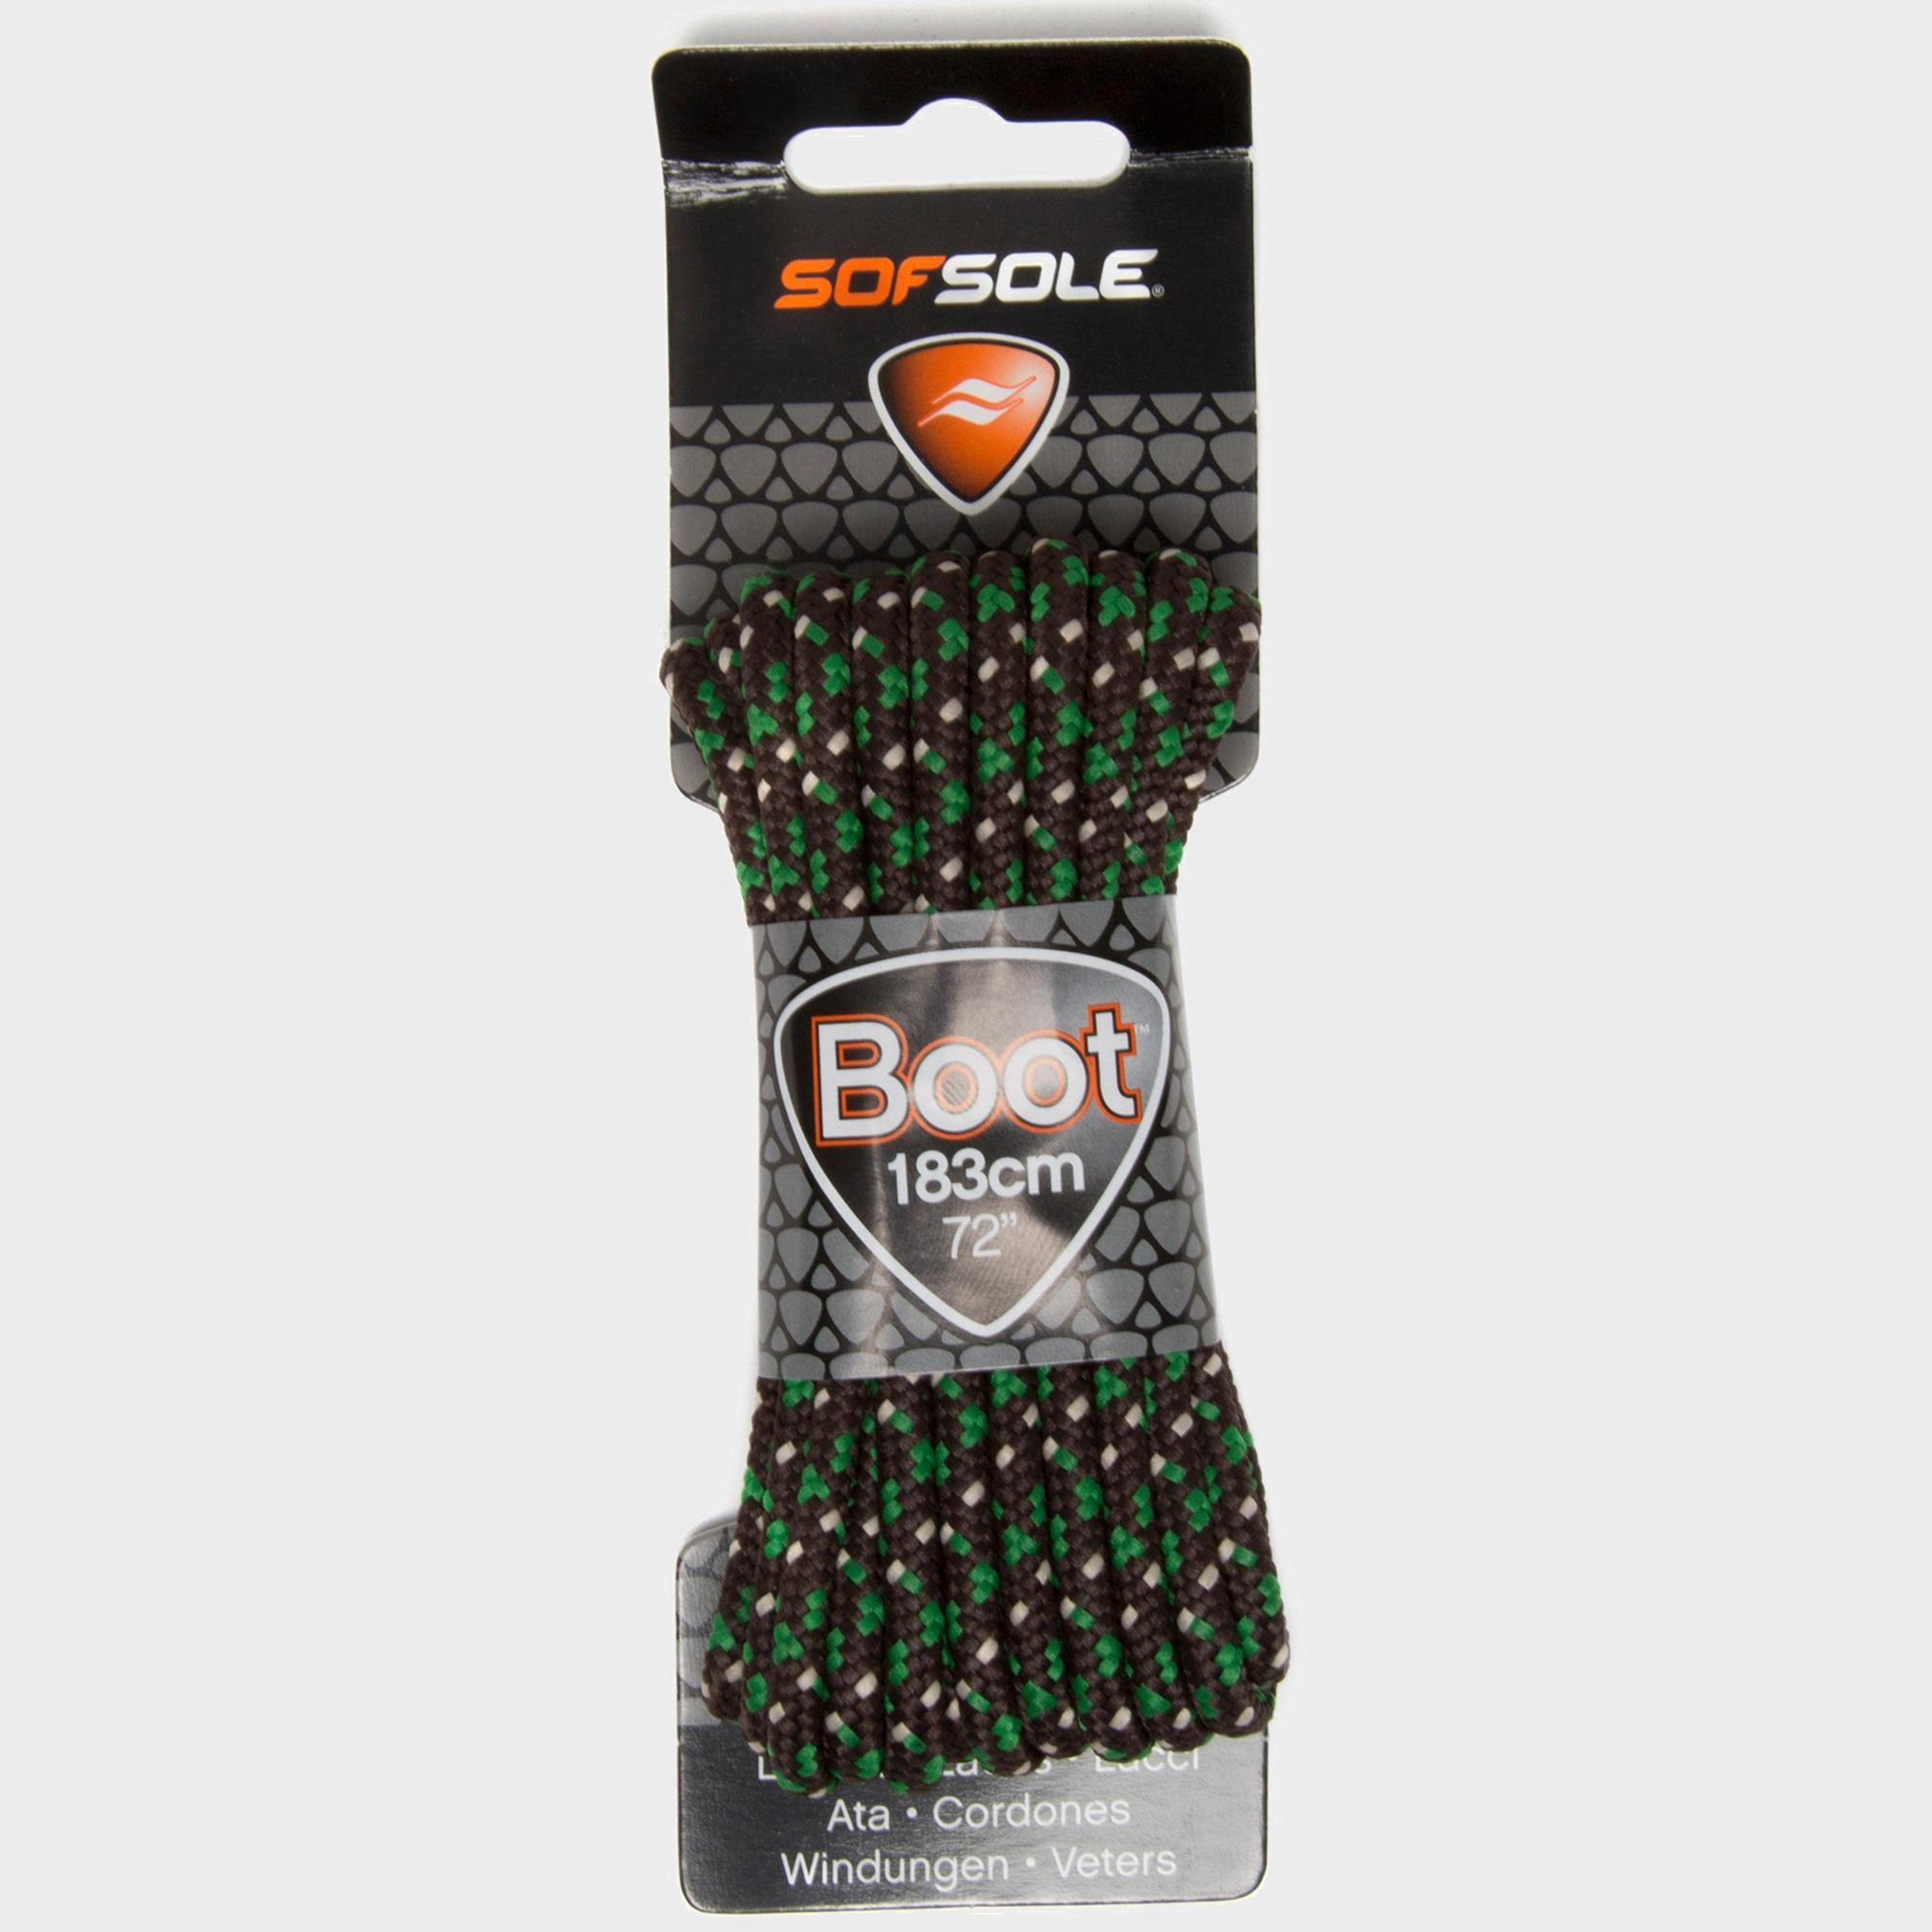 SOF SOLE Military Boot Laces - 183cm